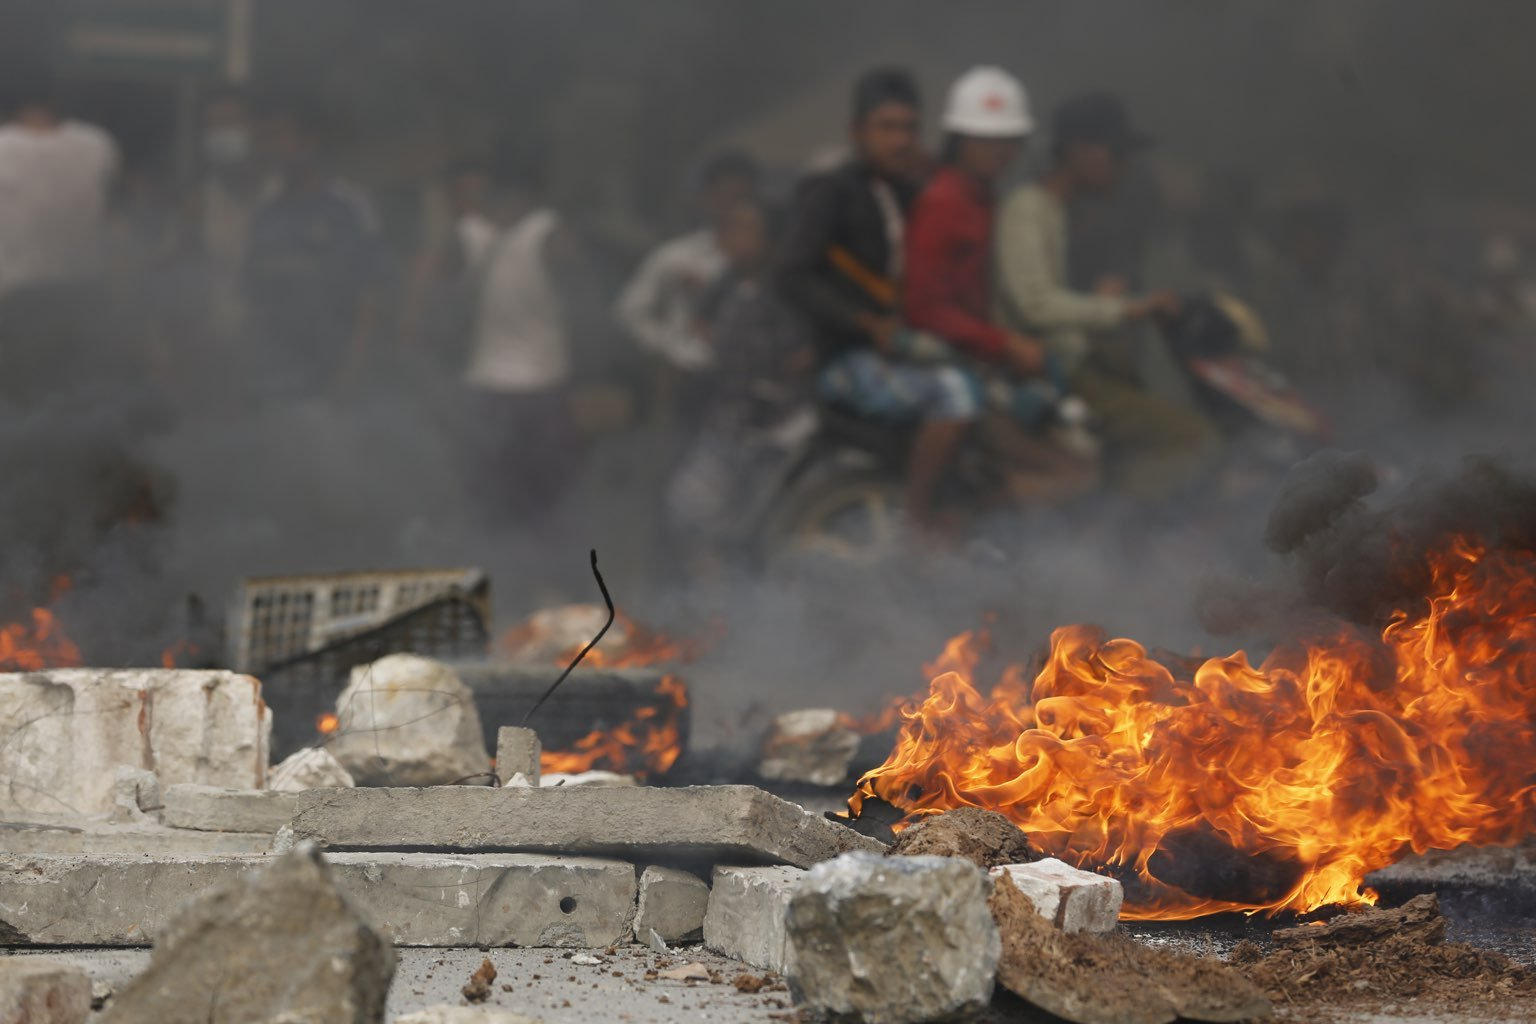 A barricade burns at an anti-coup protest in Mandalay's Chan Mya Tharzi Township on March 21. (Frontier)